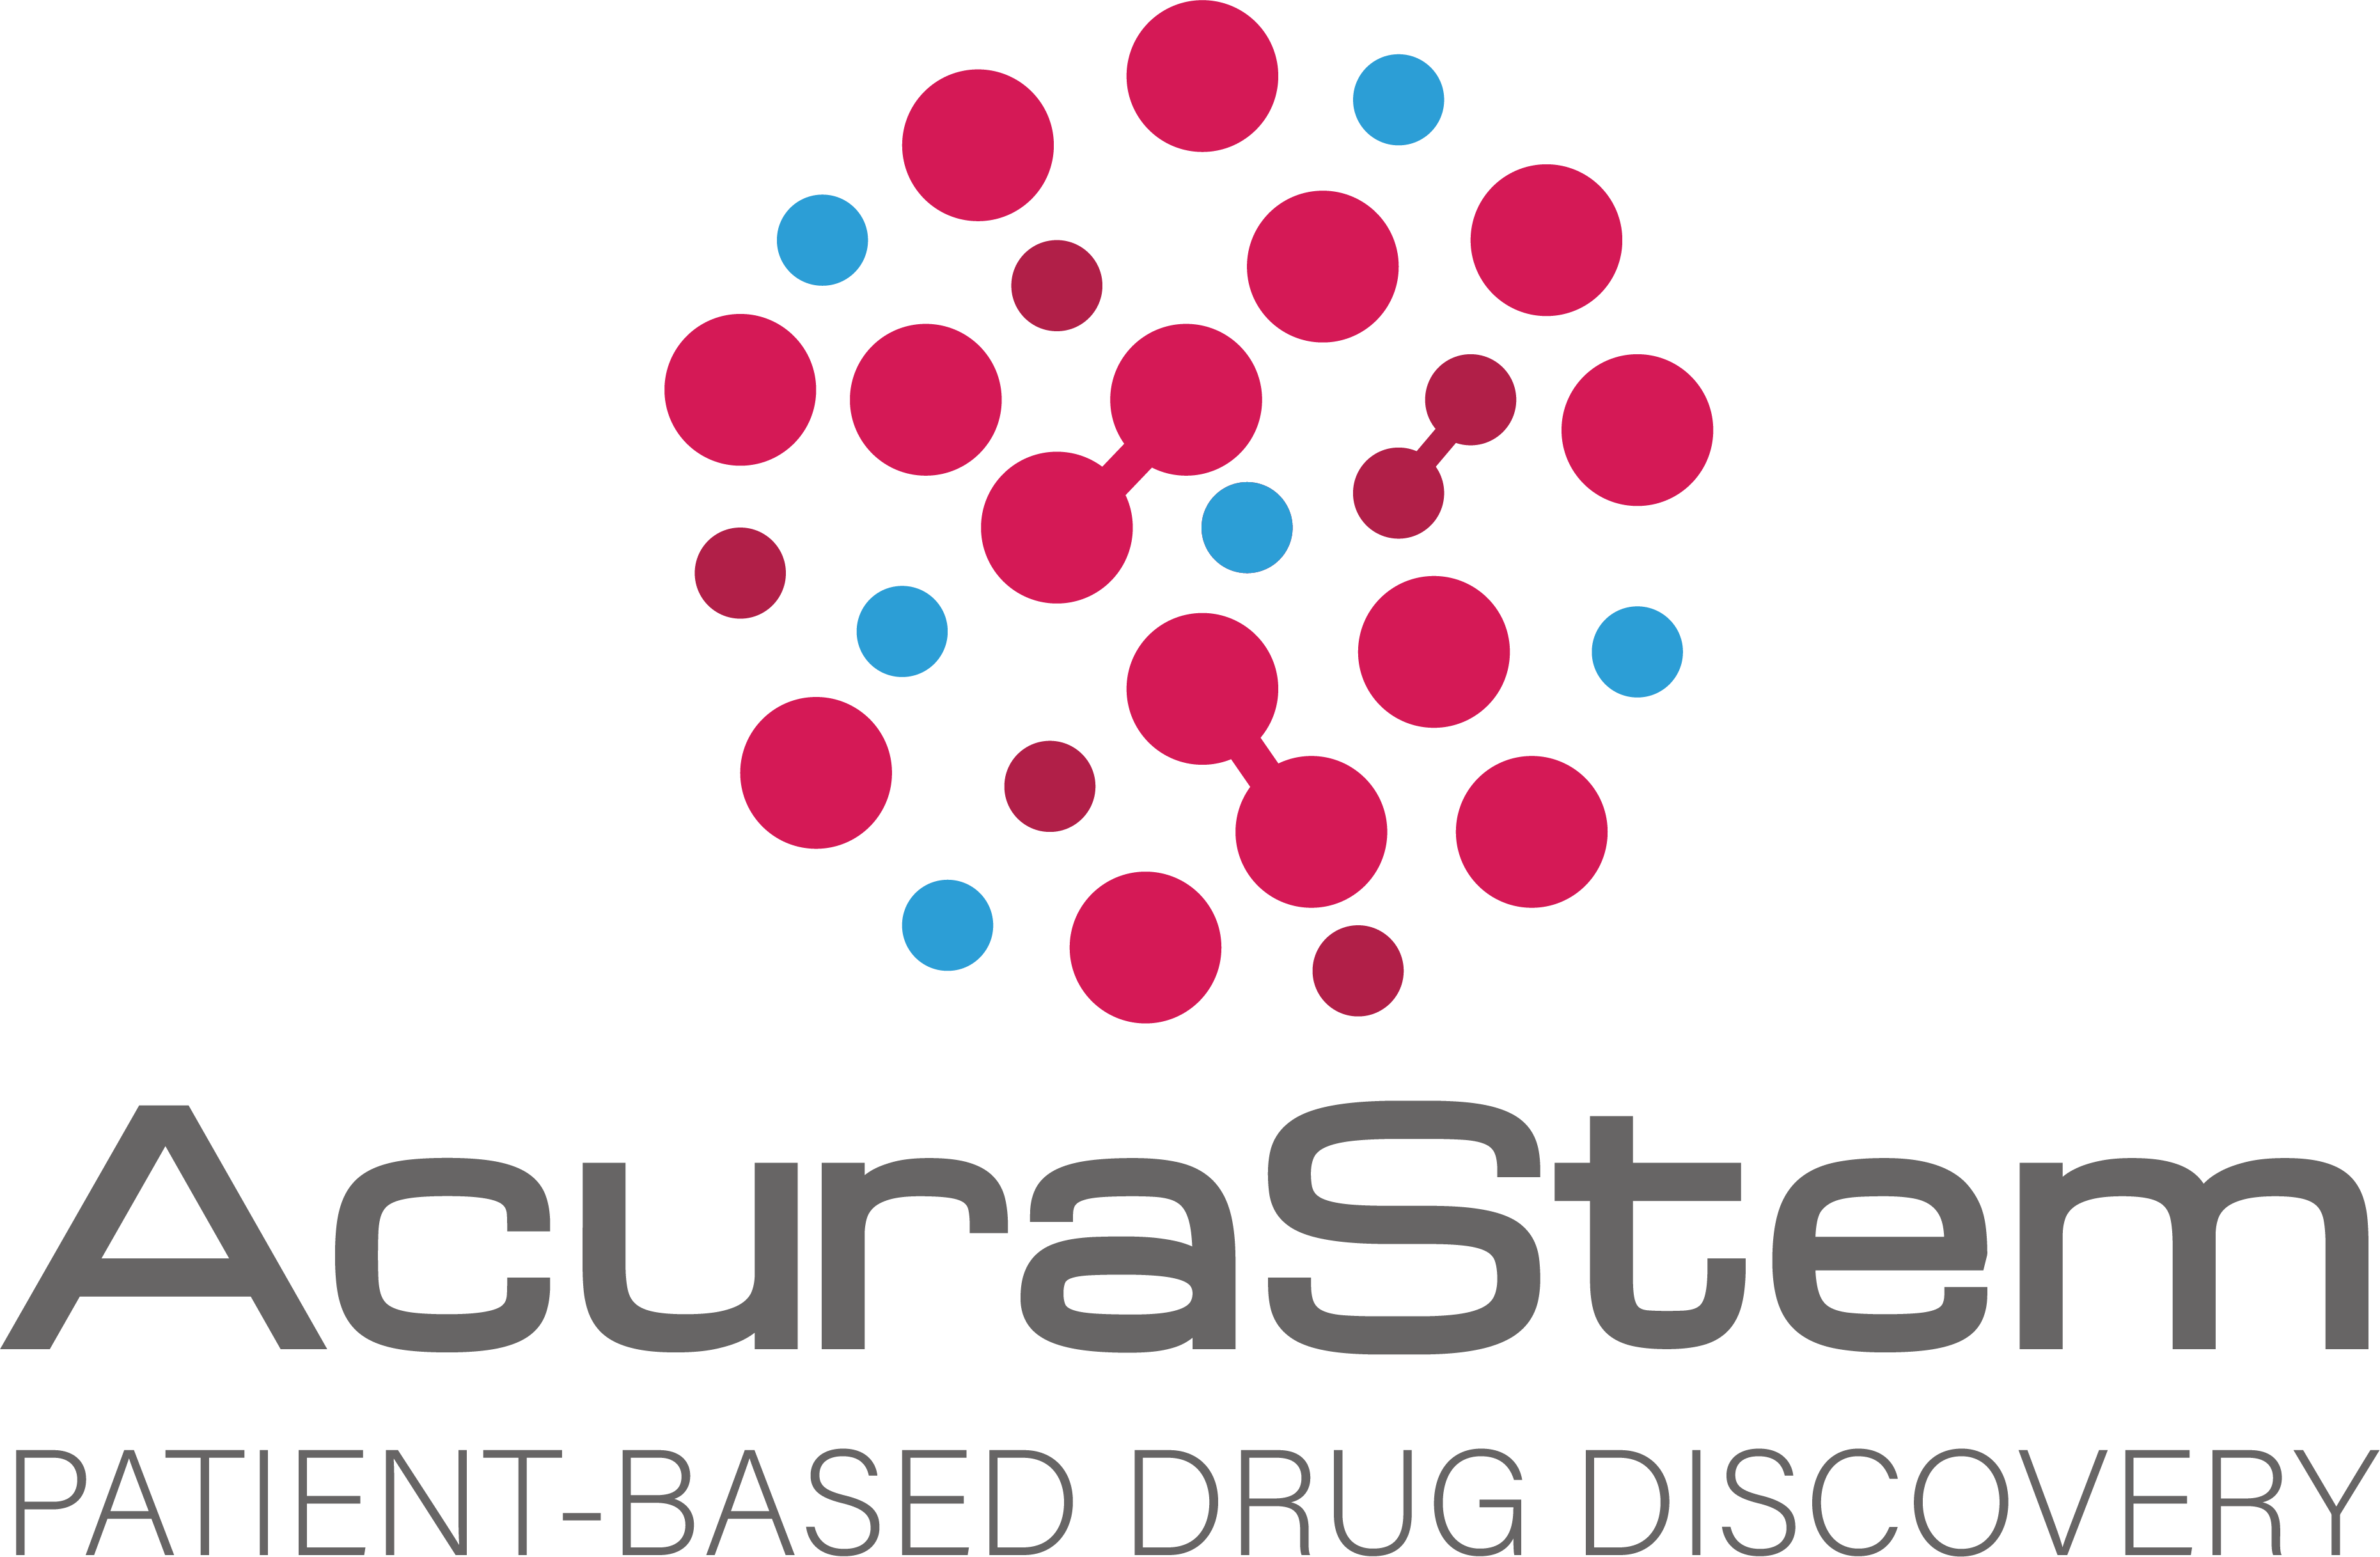 MDA Awards Venture Philanthropy Grant to AcuraStem to Develop